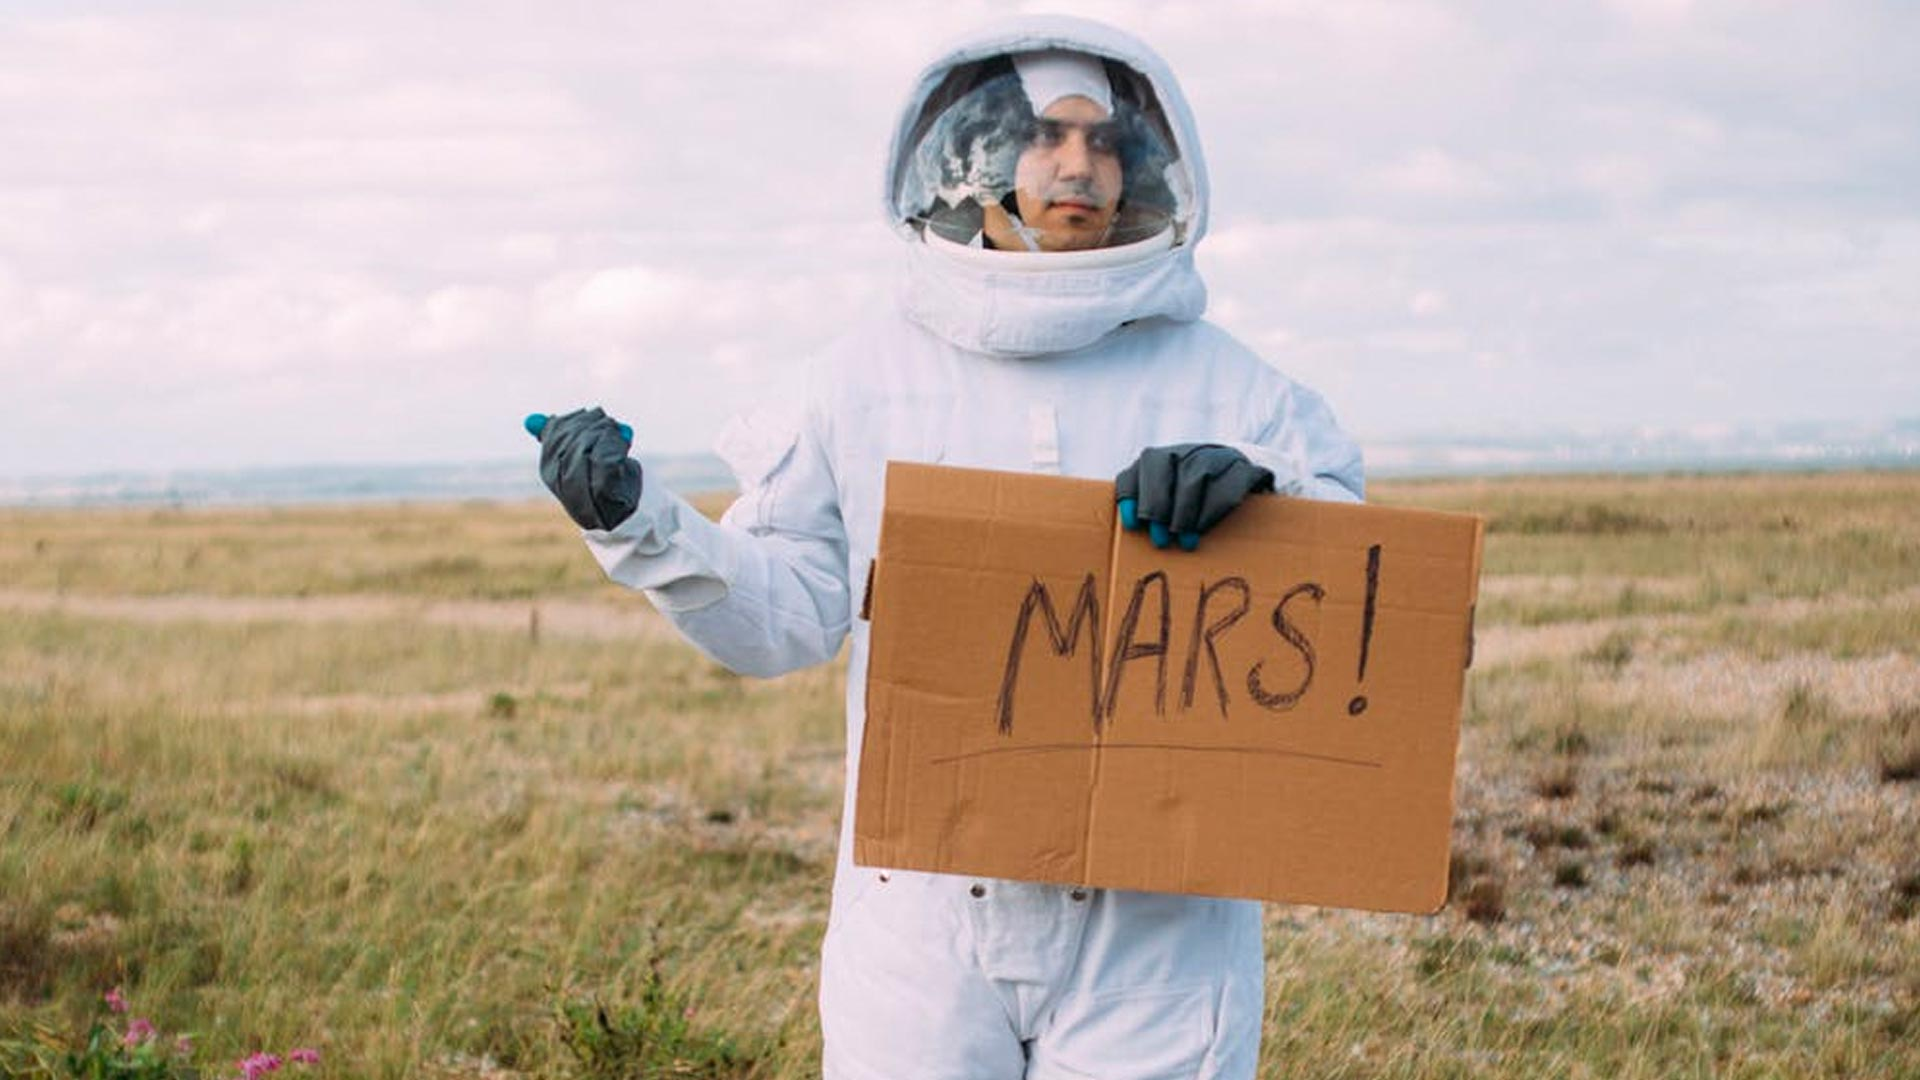 Want to Go To Mars?